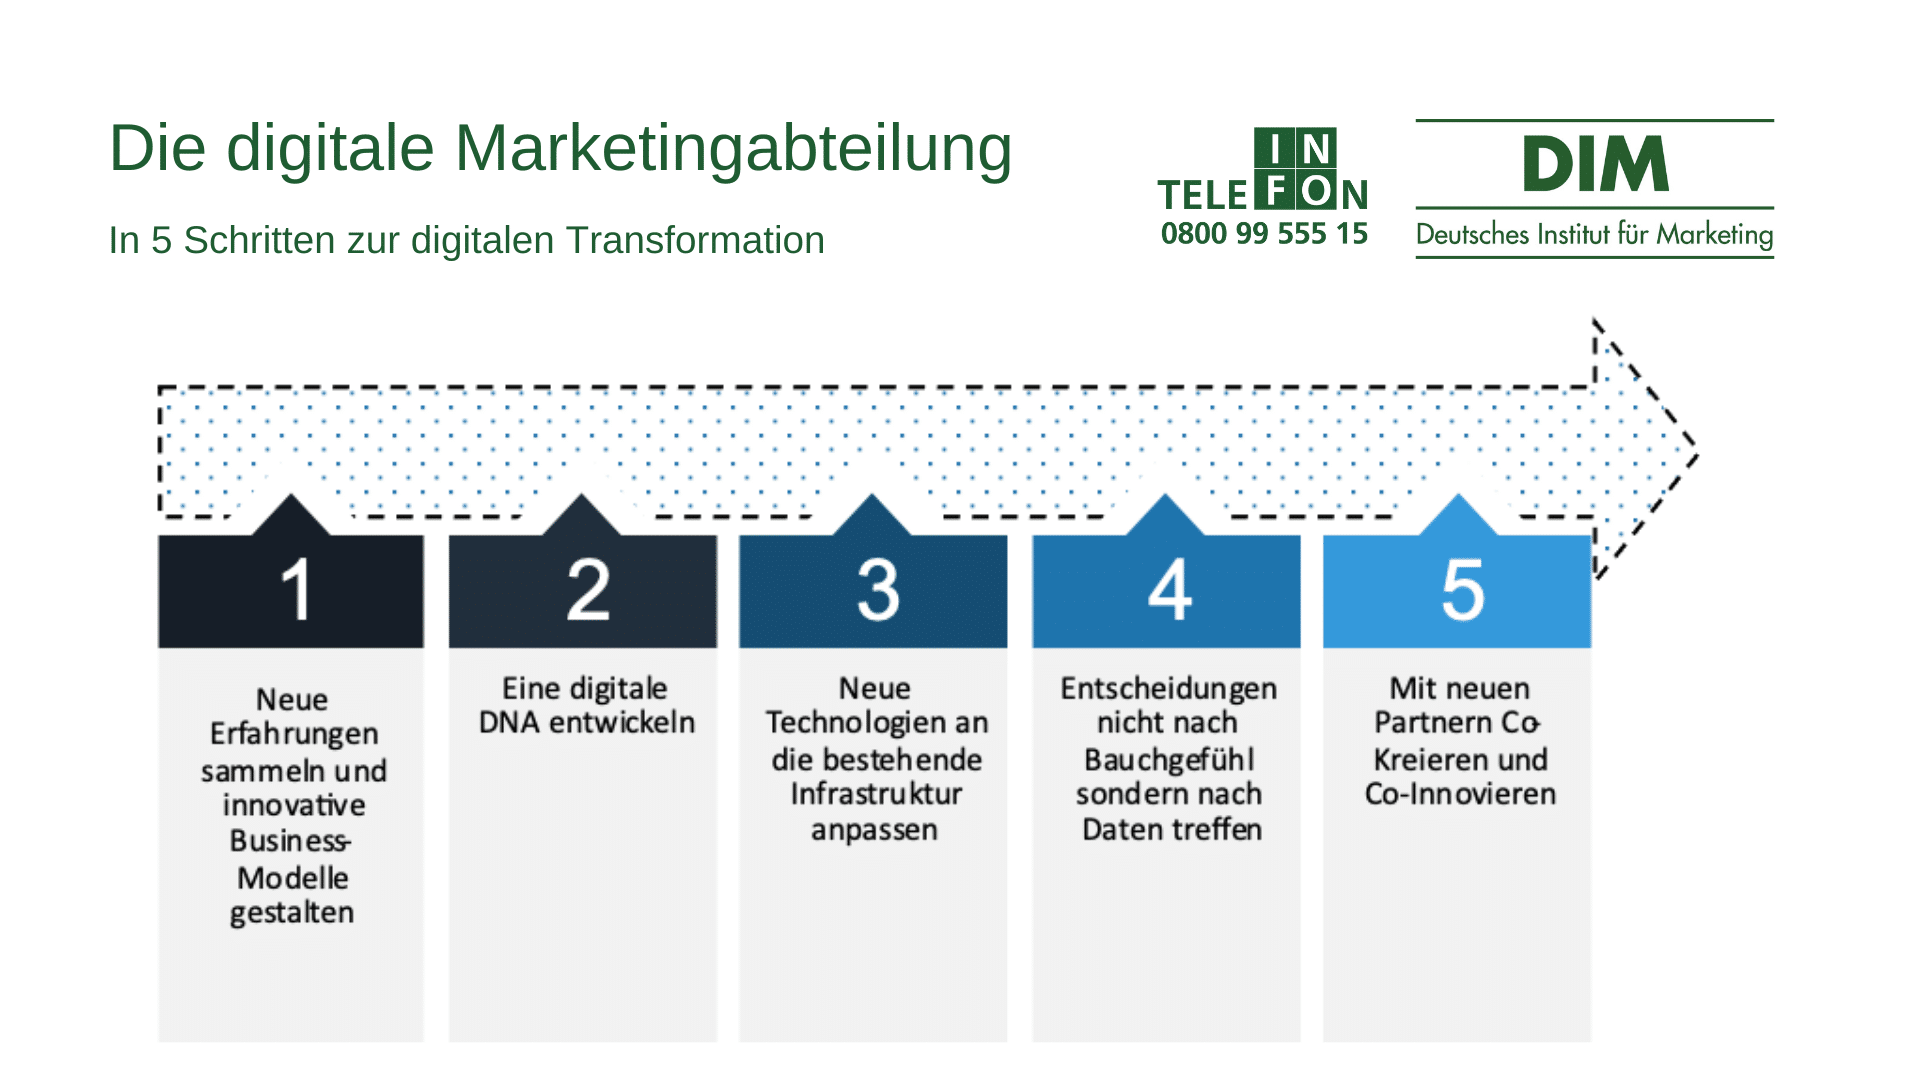 Die digitale Marketingabteilung